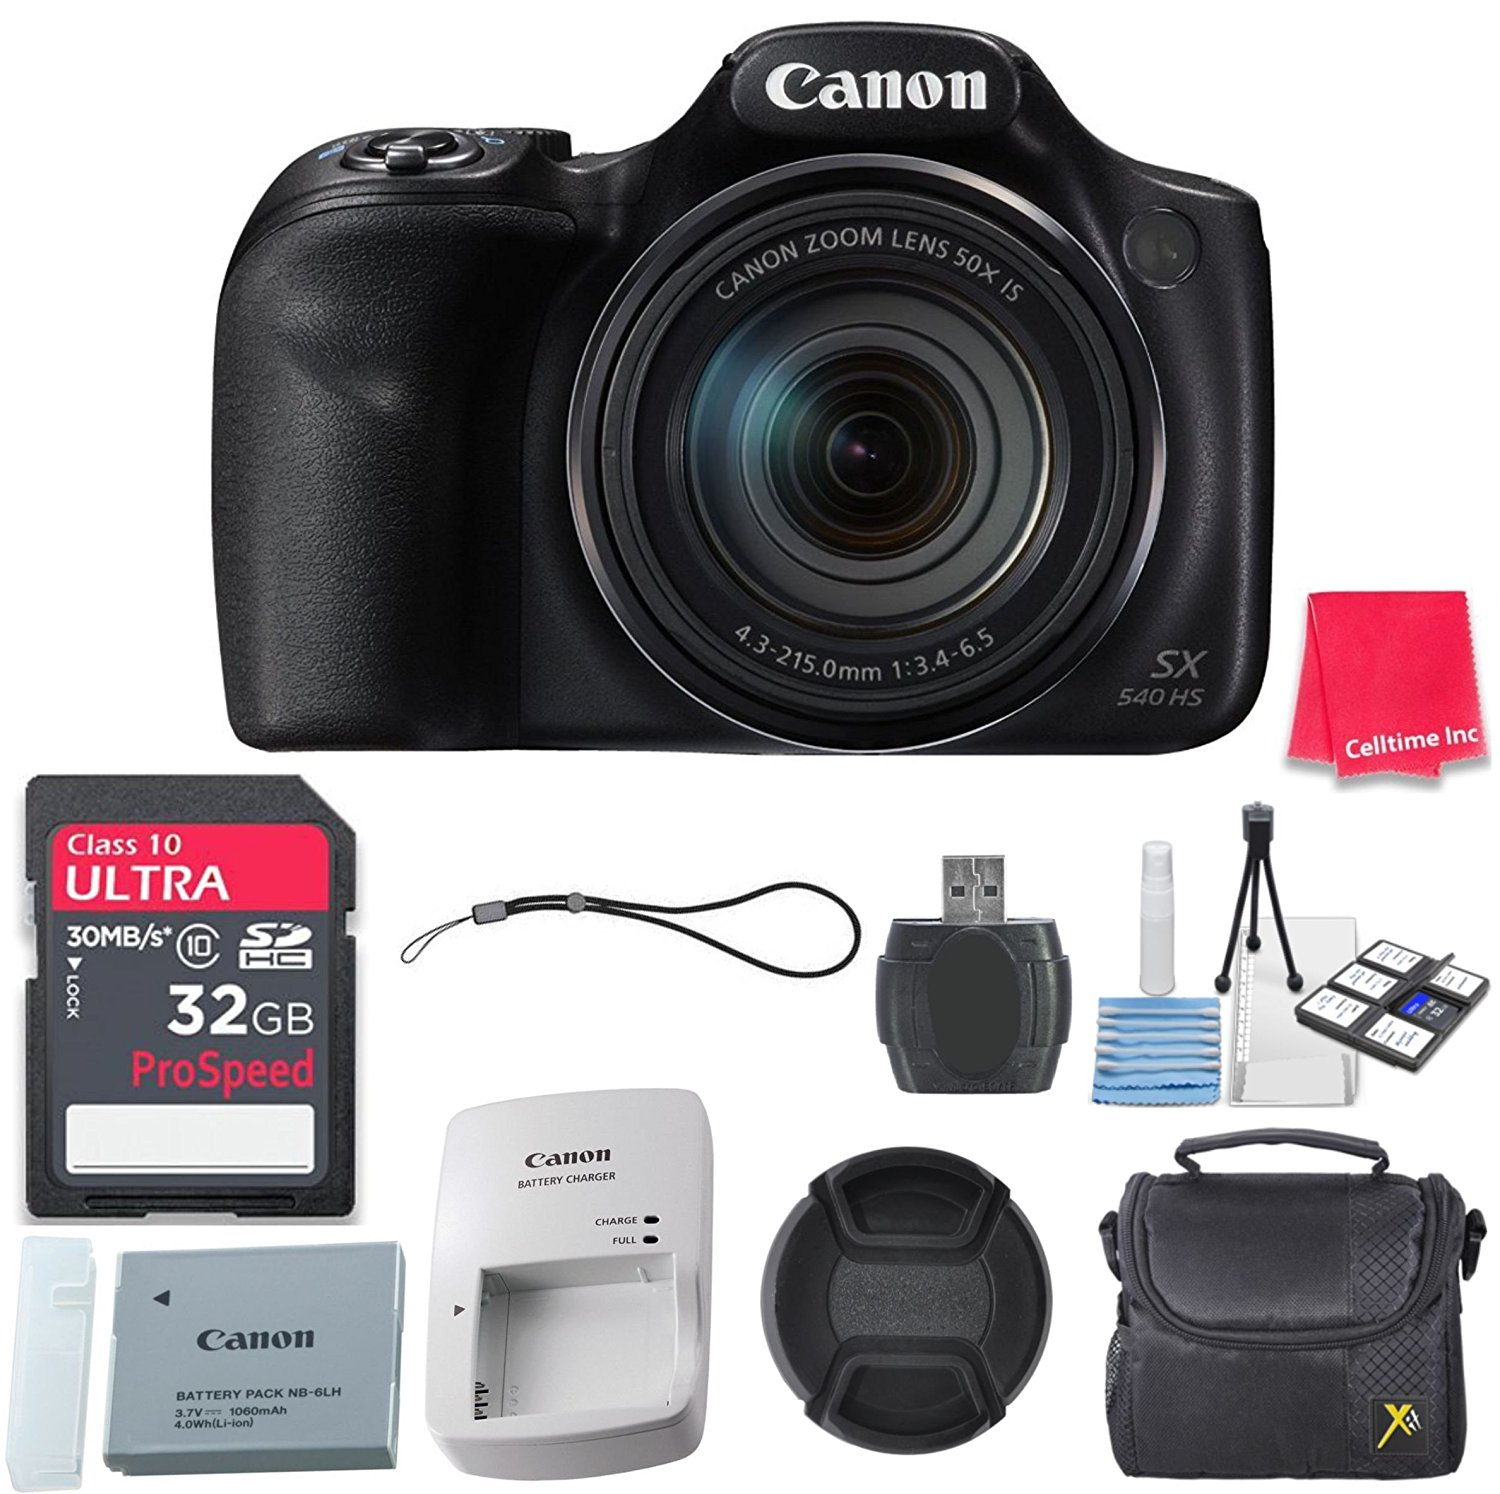 Canon PowerShot SX540 HS with 50x Optical Zoom and Built-In Wi-Fi + 32GB Ultra High Speed Memory Card + Deluxe Case + Microfiber Cleaning Cloth + Accessory Bundle - International Version (No Warranty)